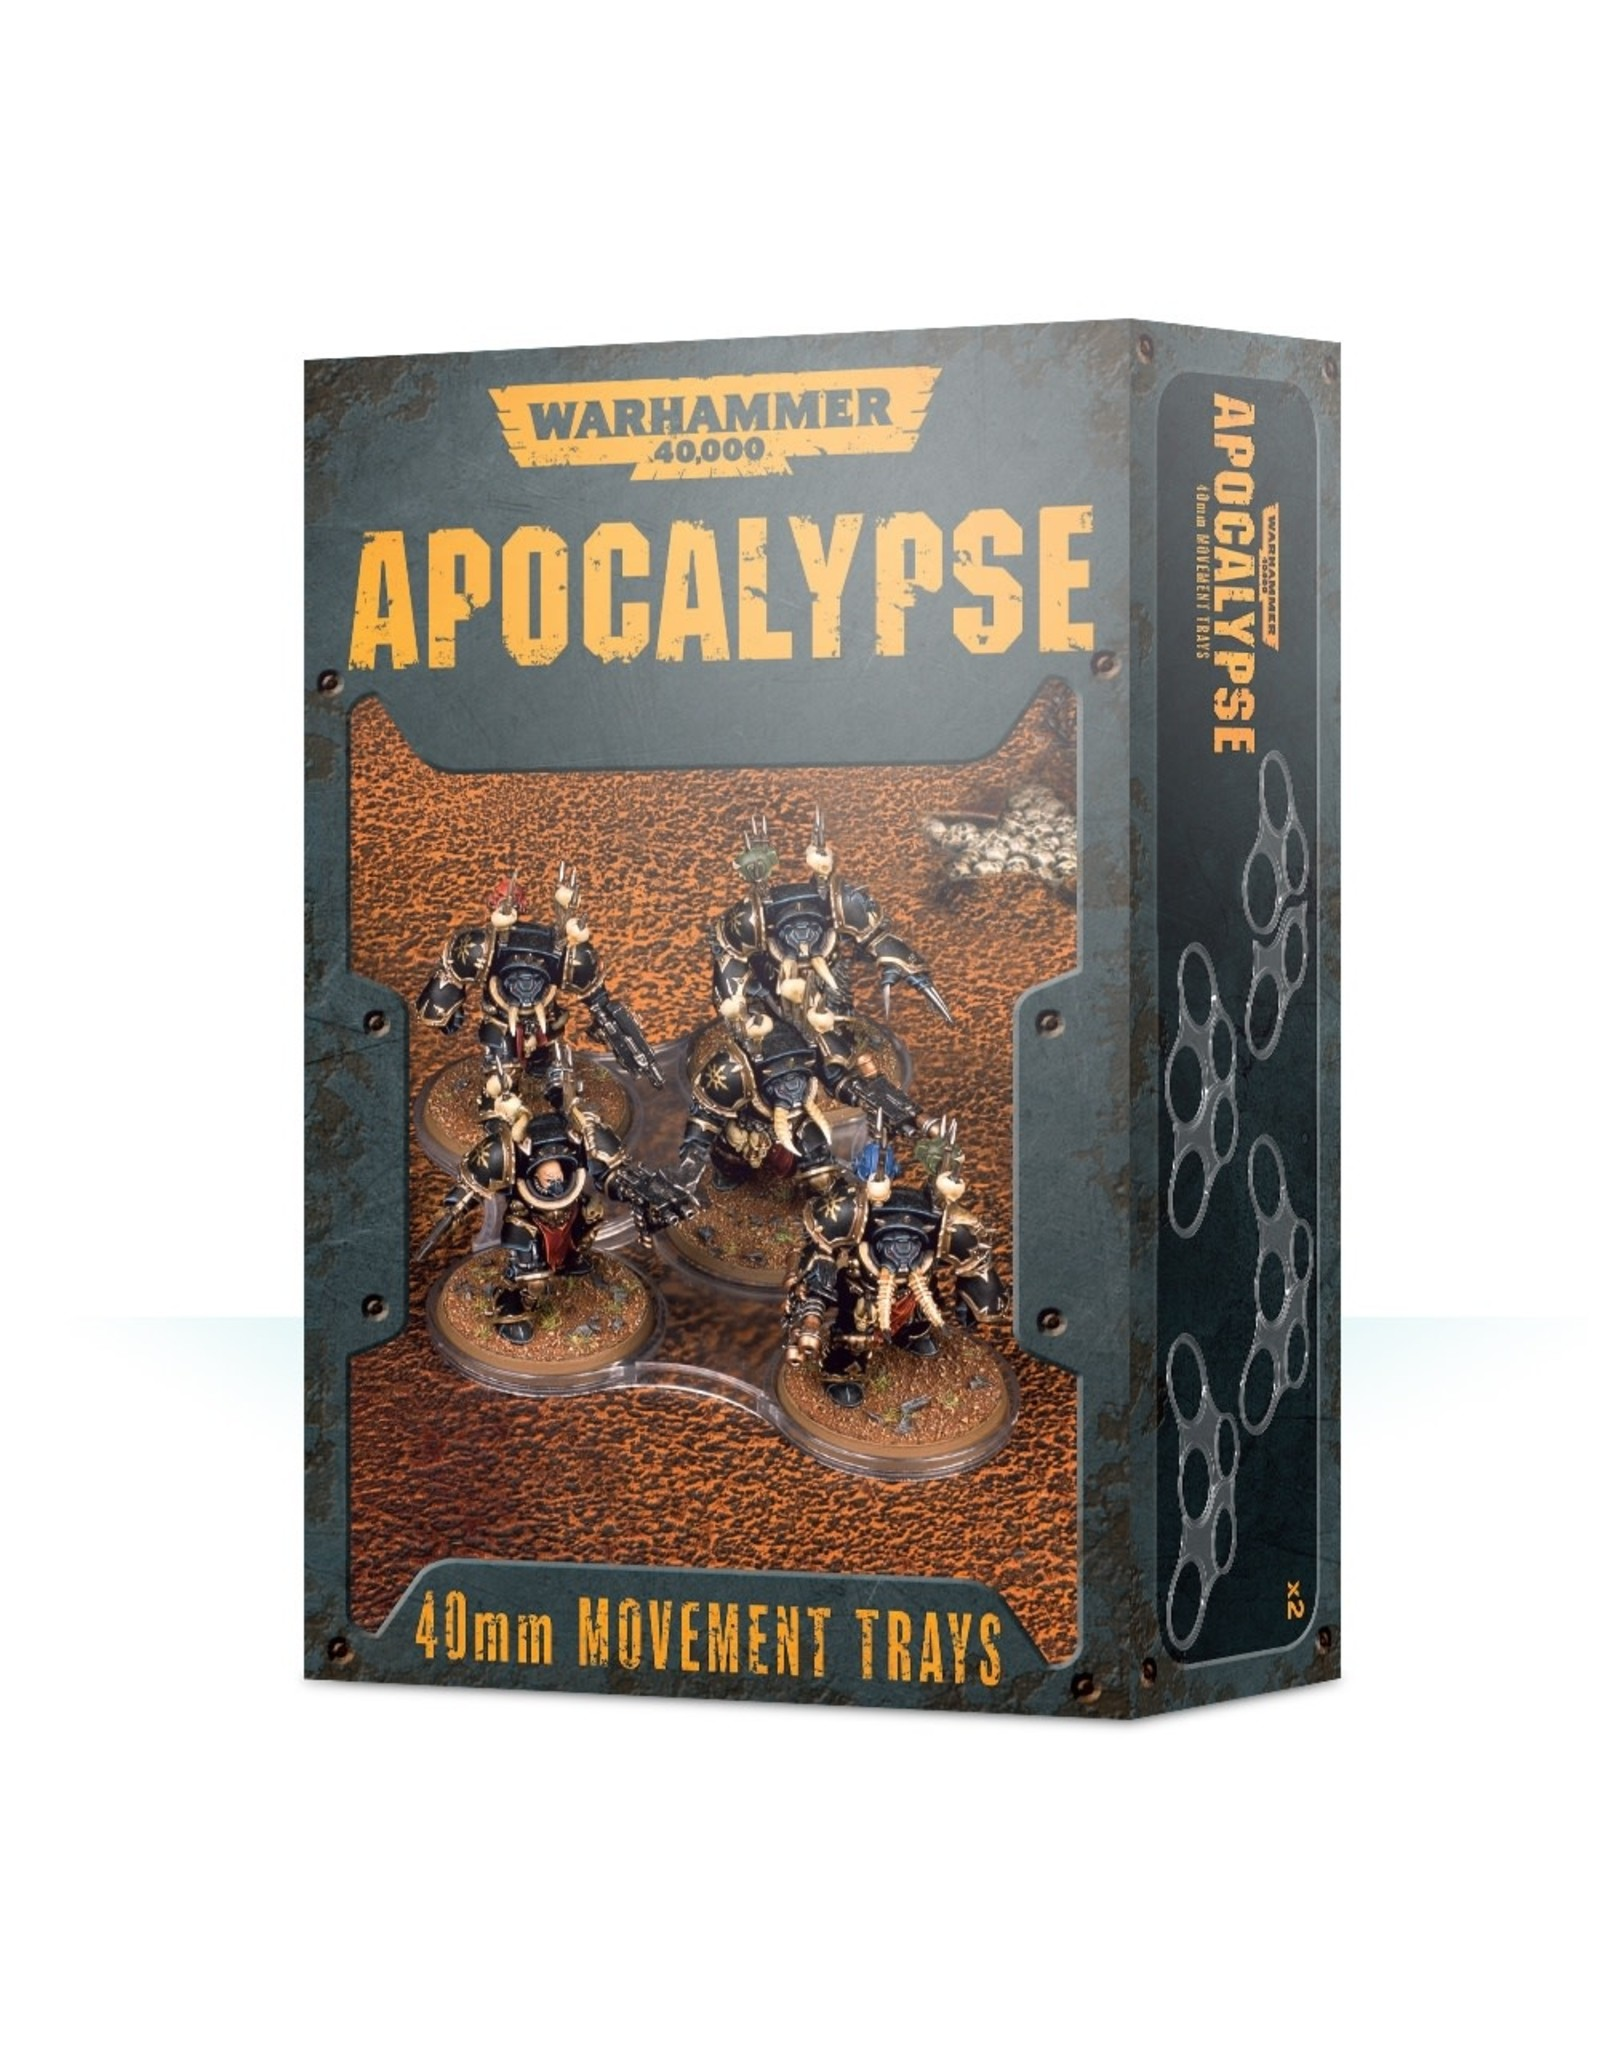 Games Workshop Apocalypse Movement Trays: 40mm